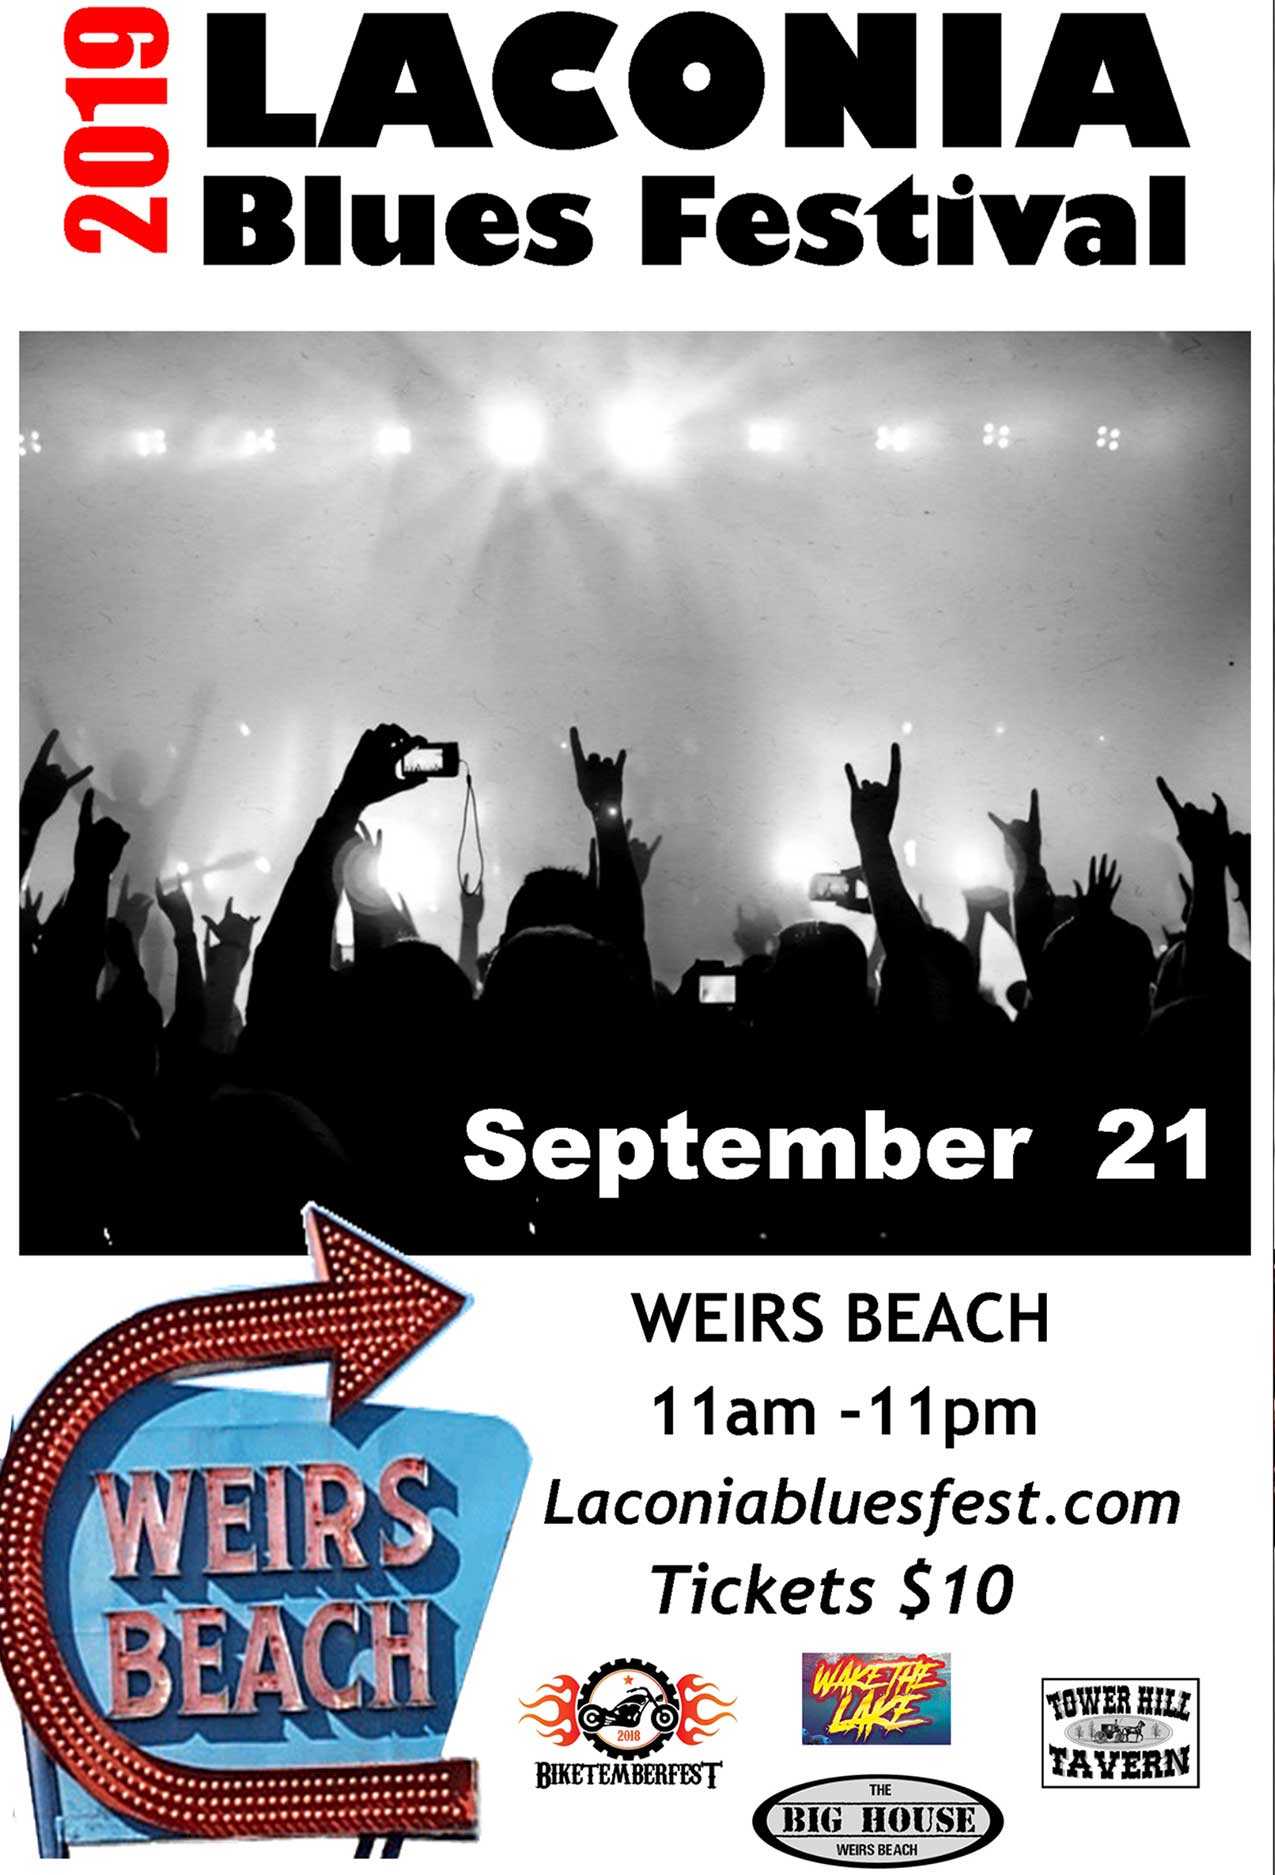 Laconia Blues Festival Concert Flyer